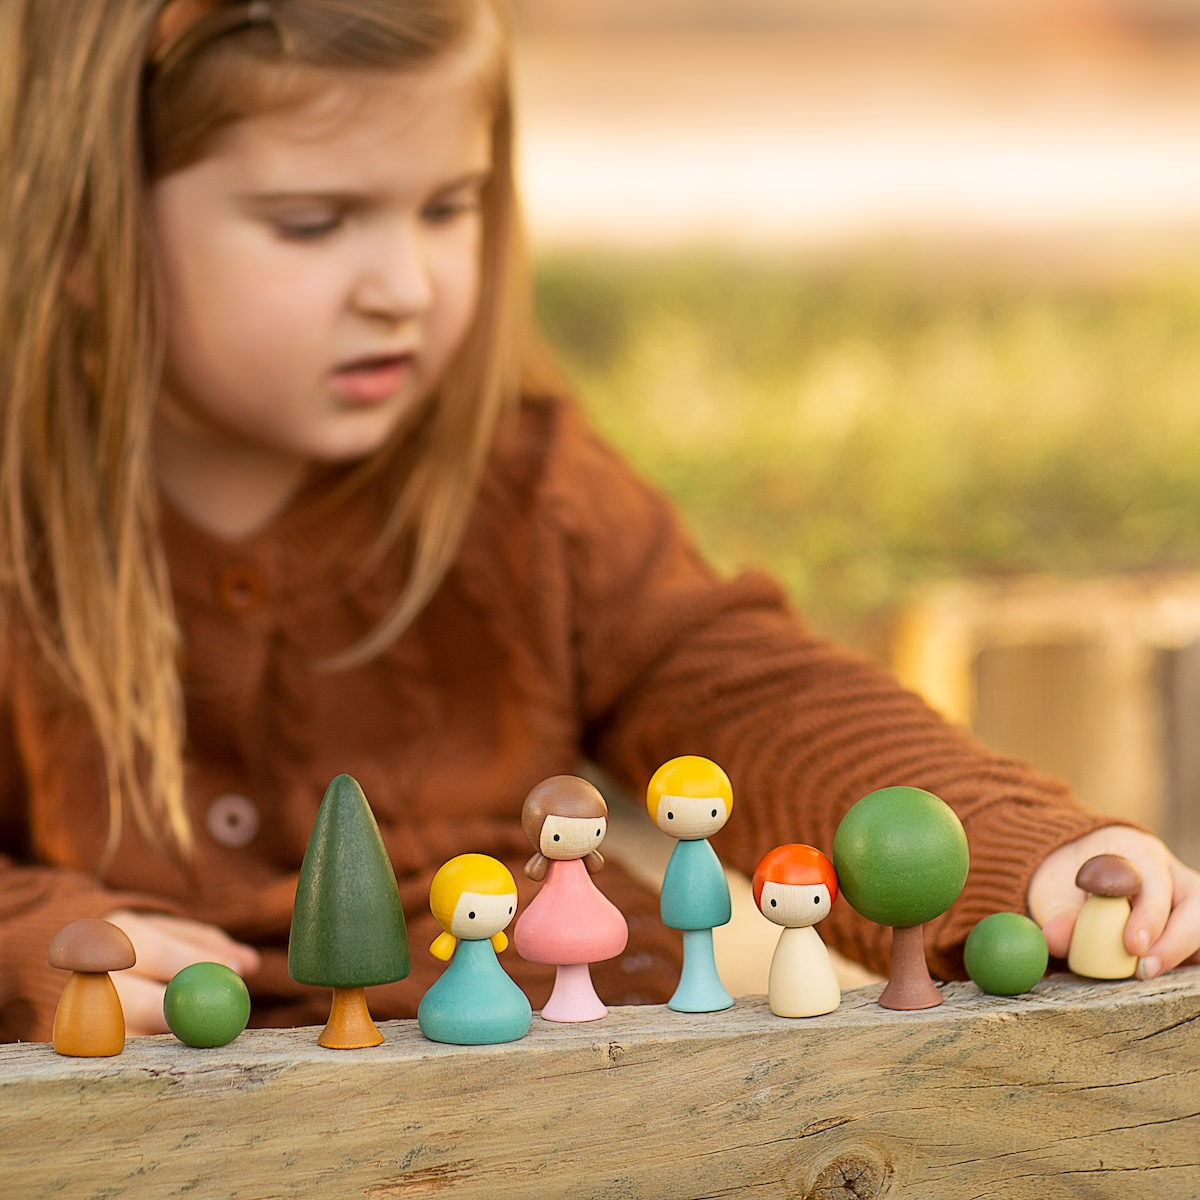 A little girl sitting at a picnic table outdoors playing with Clicques wooden dolls